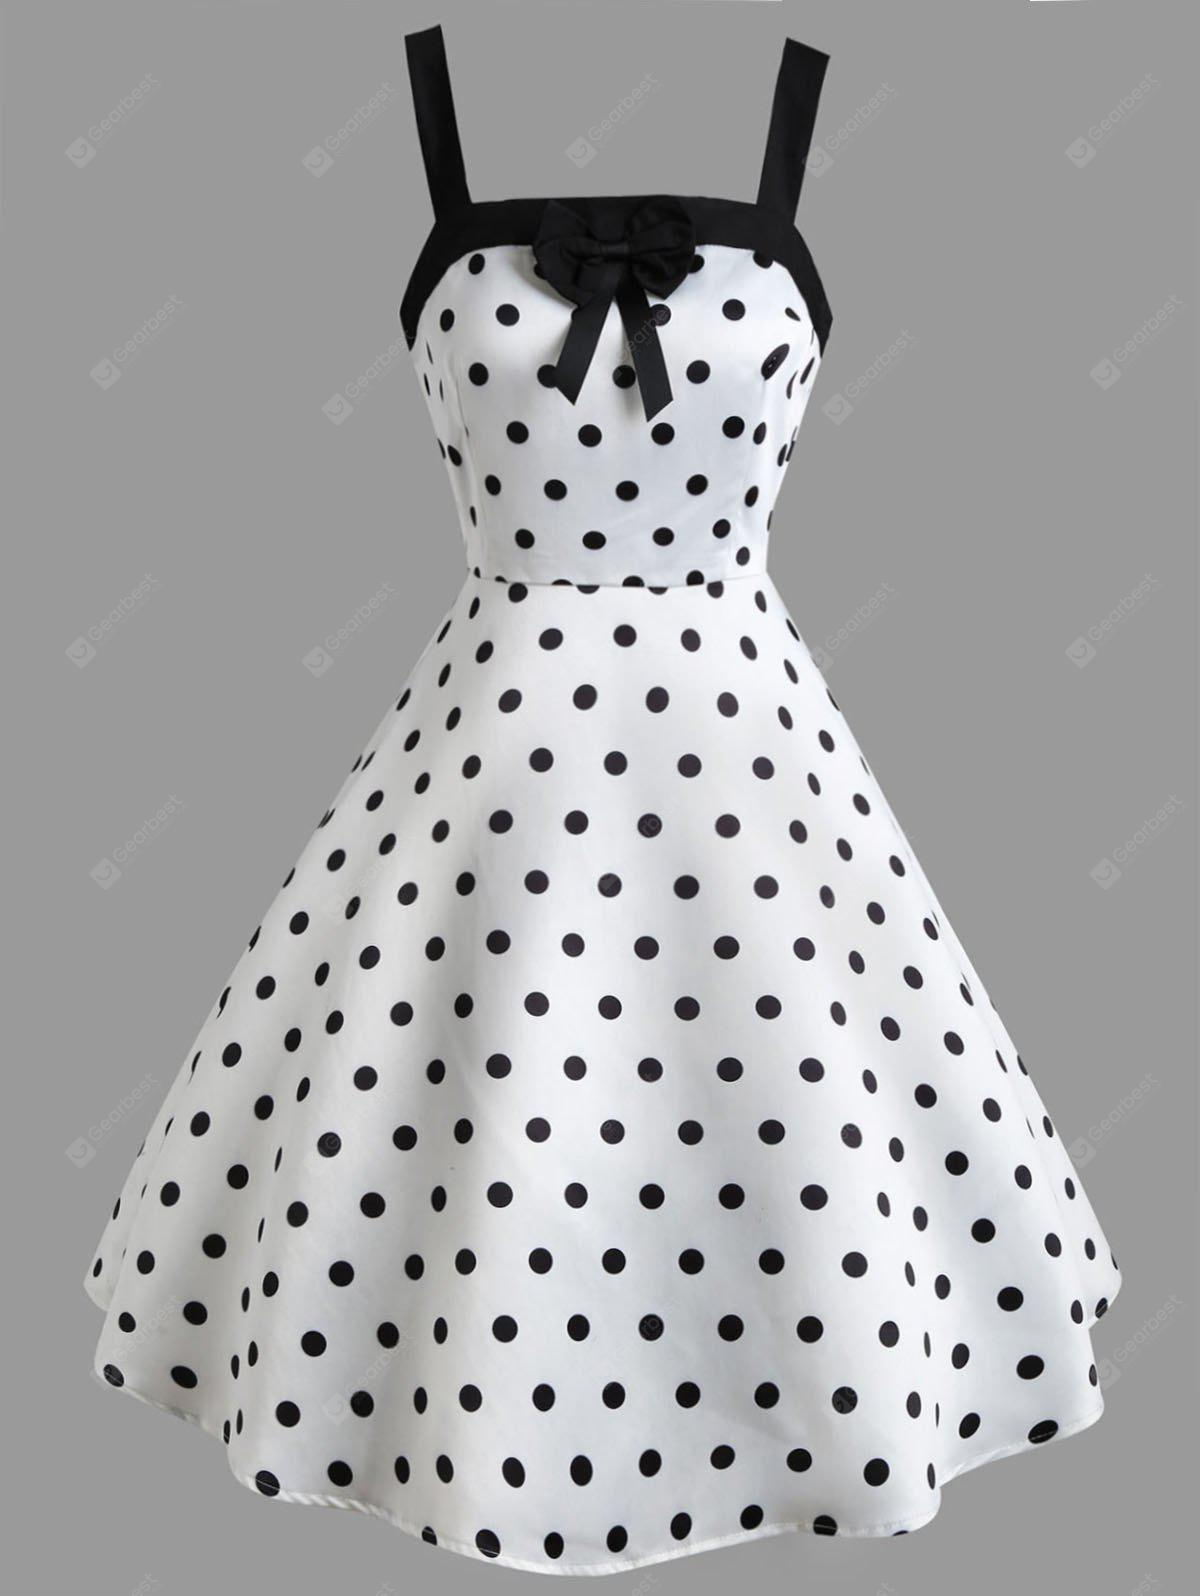 Polka Dot Print Bowknot Embellished Vintage Dress